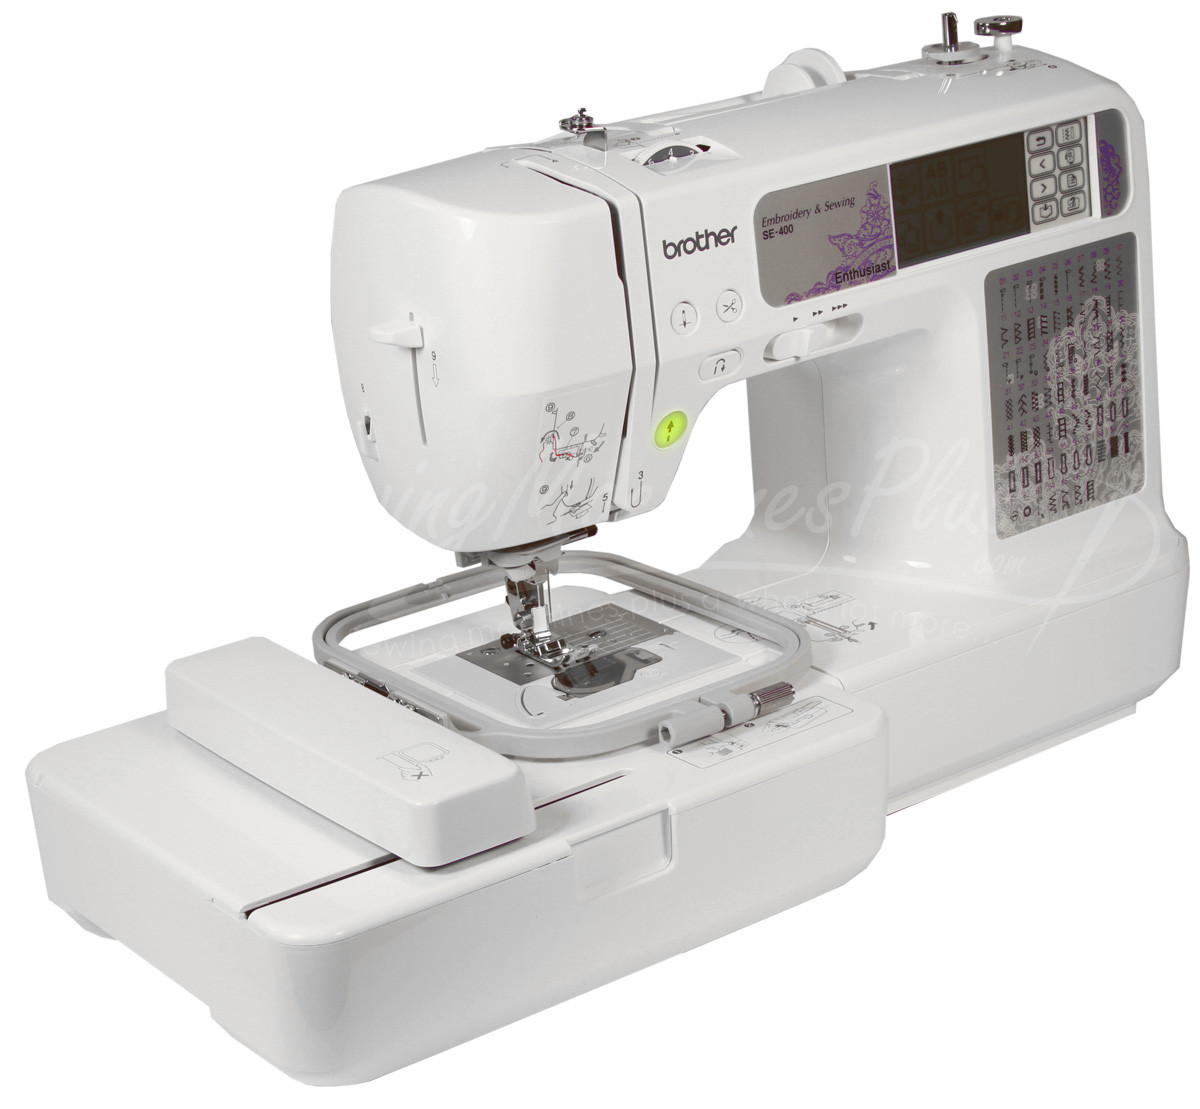 Sewing and Embroidery Machine Awesome Brother Se 400 Sewing & Embroidery Machine with Puter Of Unique 48 Pics Sewing and Embroidery Machine